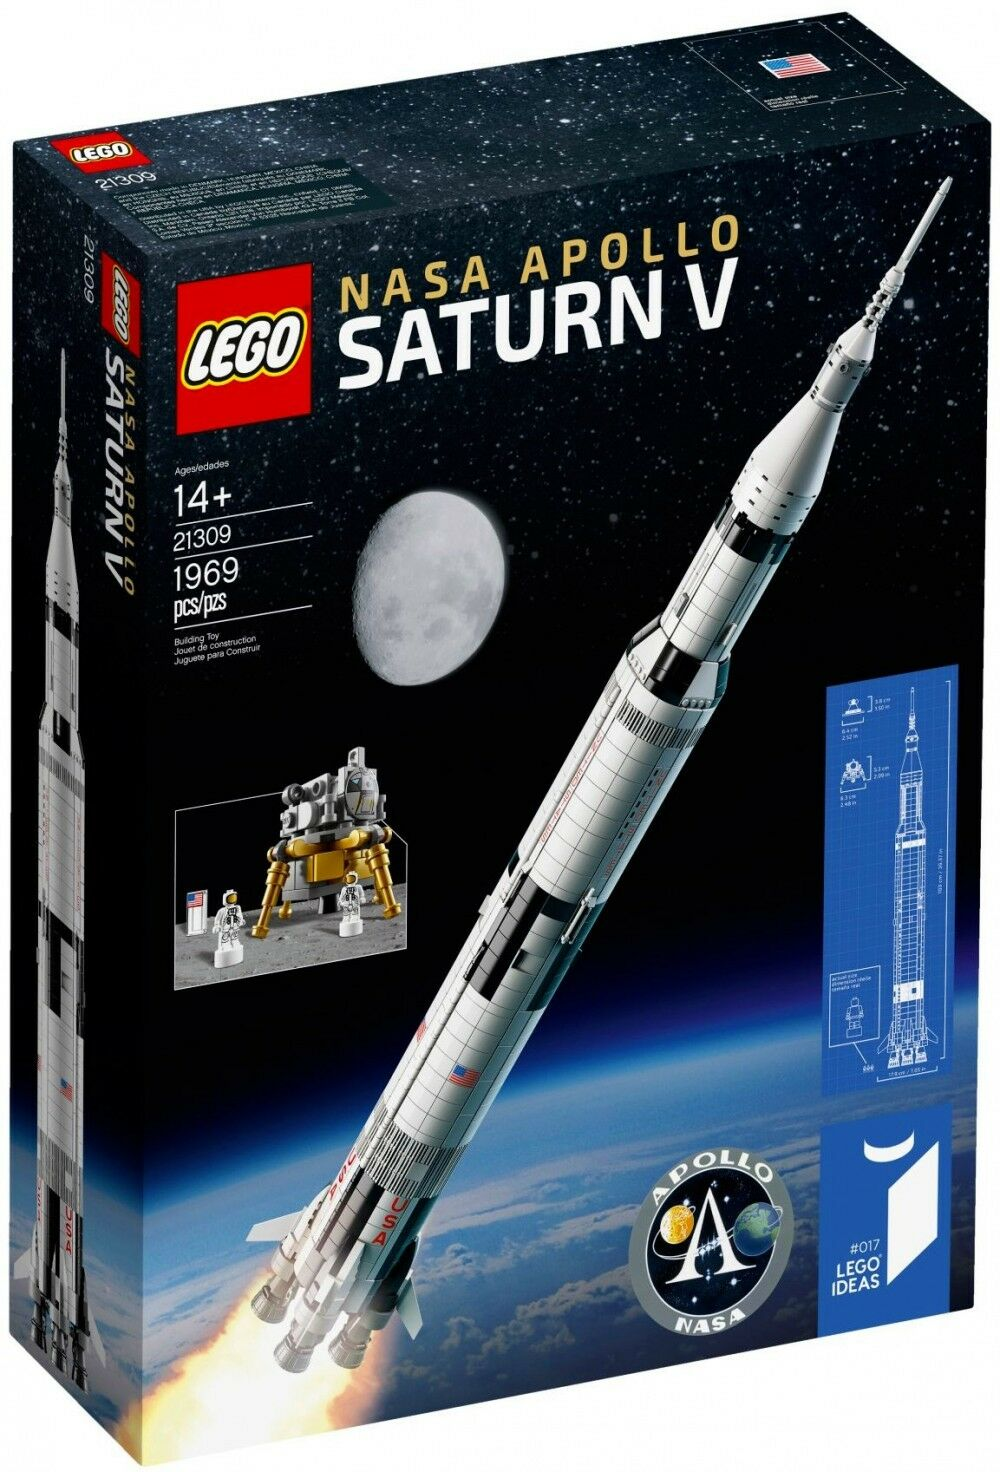 Lego Ideas - 21309 - LEGO NASA Apollo Saturn V - NEUF - Scellé - DISPO